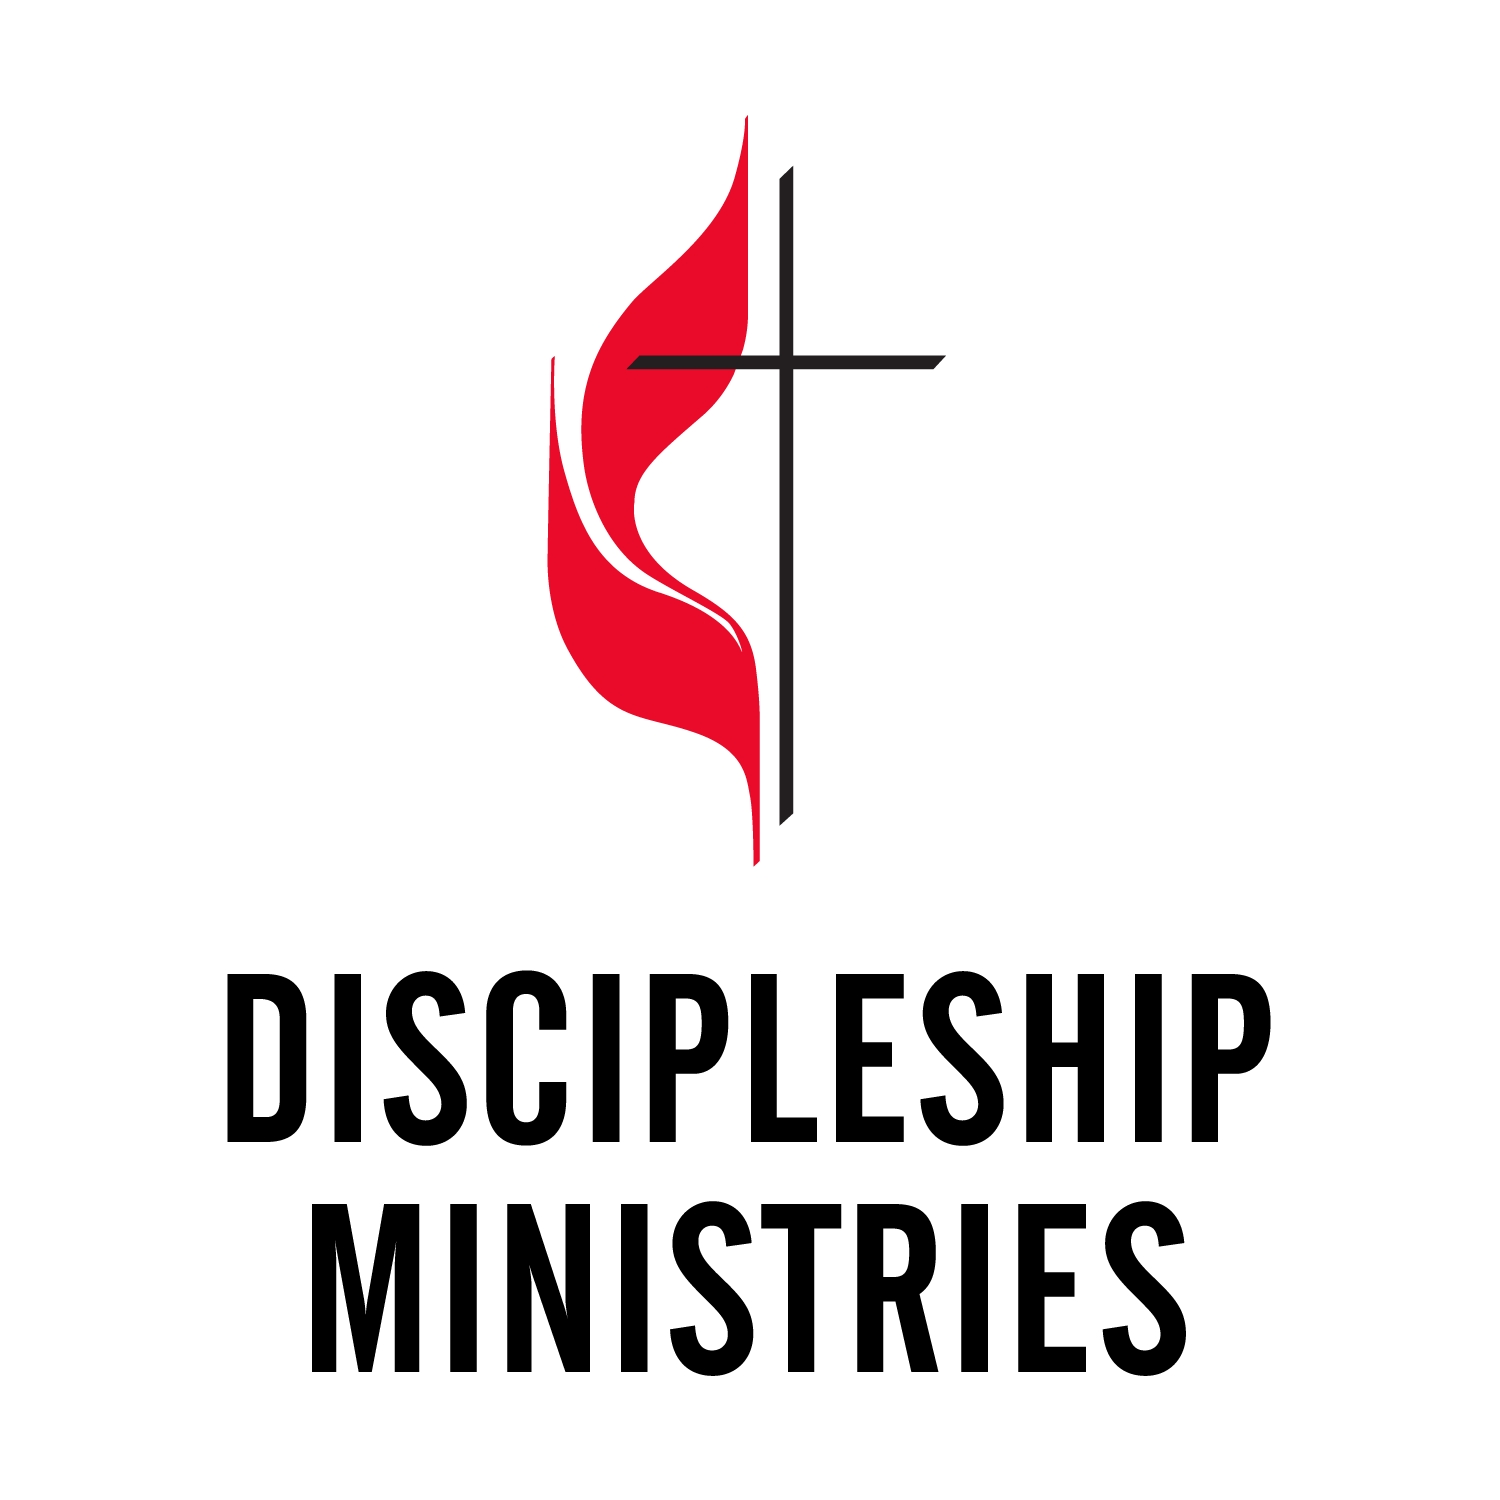 Discipleship Ministries | Worship  Lectionary For 3-15-2020 In The United Methodist Chruch